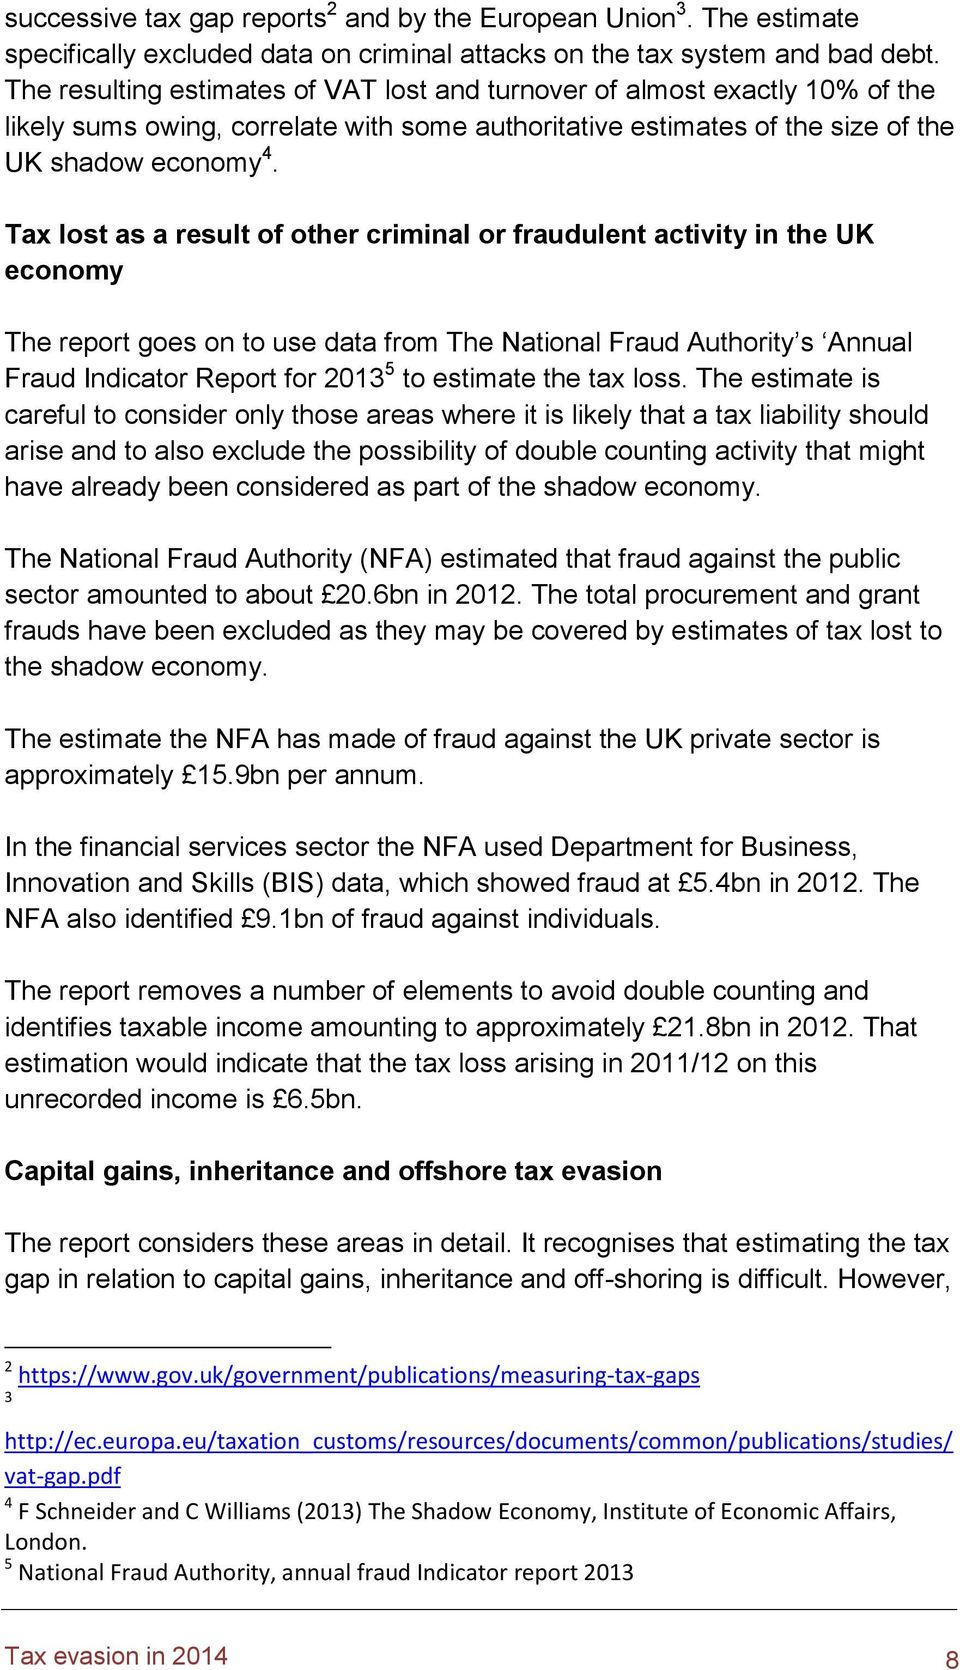 Tax lost as a result of other criminal or fraudulent activity in the UK economy The report goes on to use data from The National Fraud Authority s Annual Fraud Indicator Report for 2013 5 to estimate